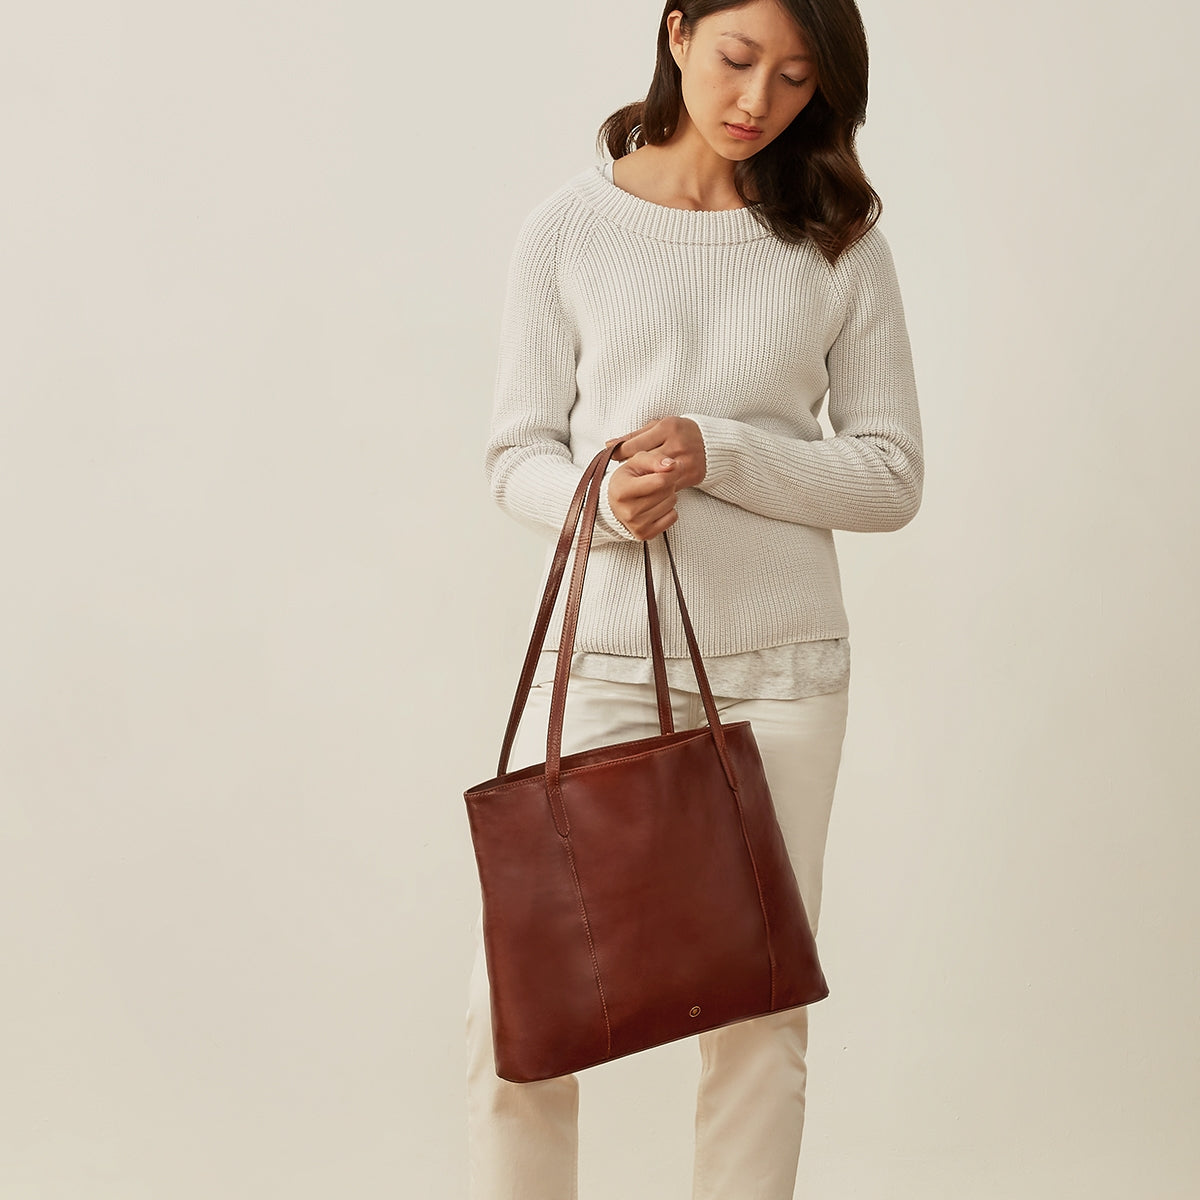 Image 8 of the 'Athenea' Chestnut Veg-Tanned Leather Shopper